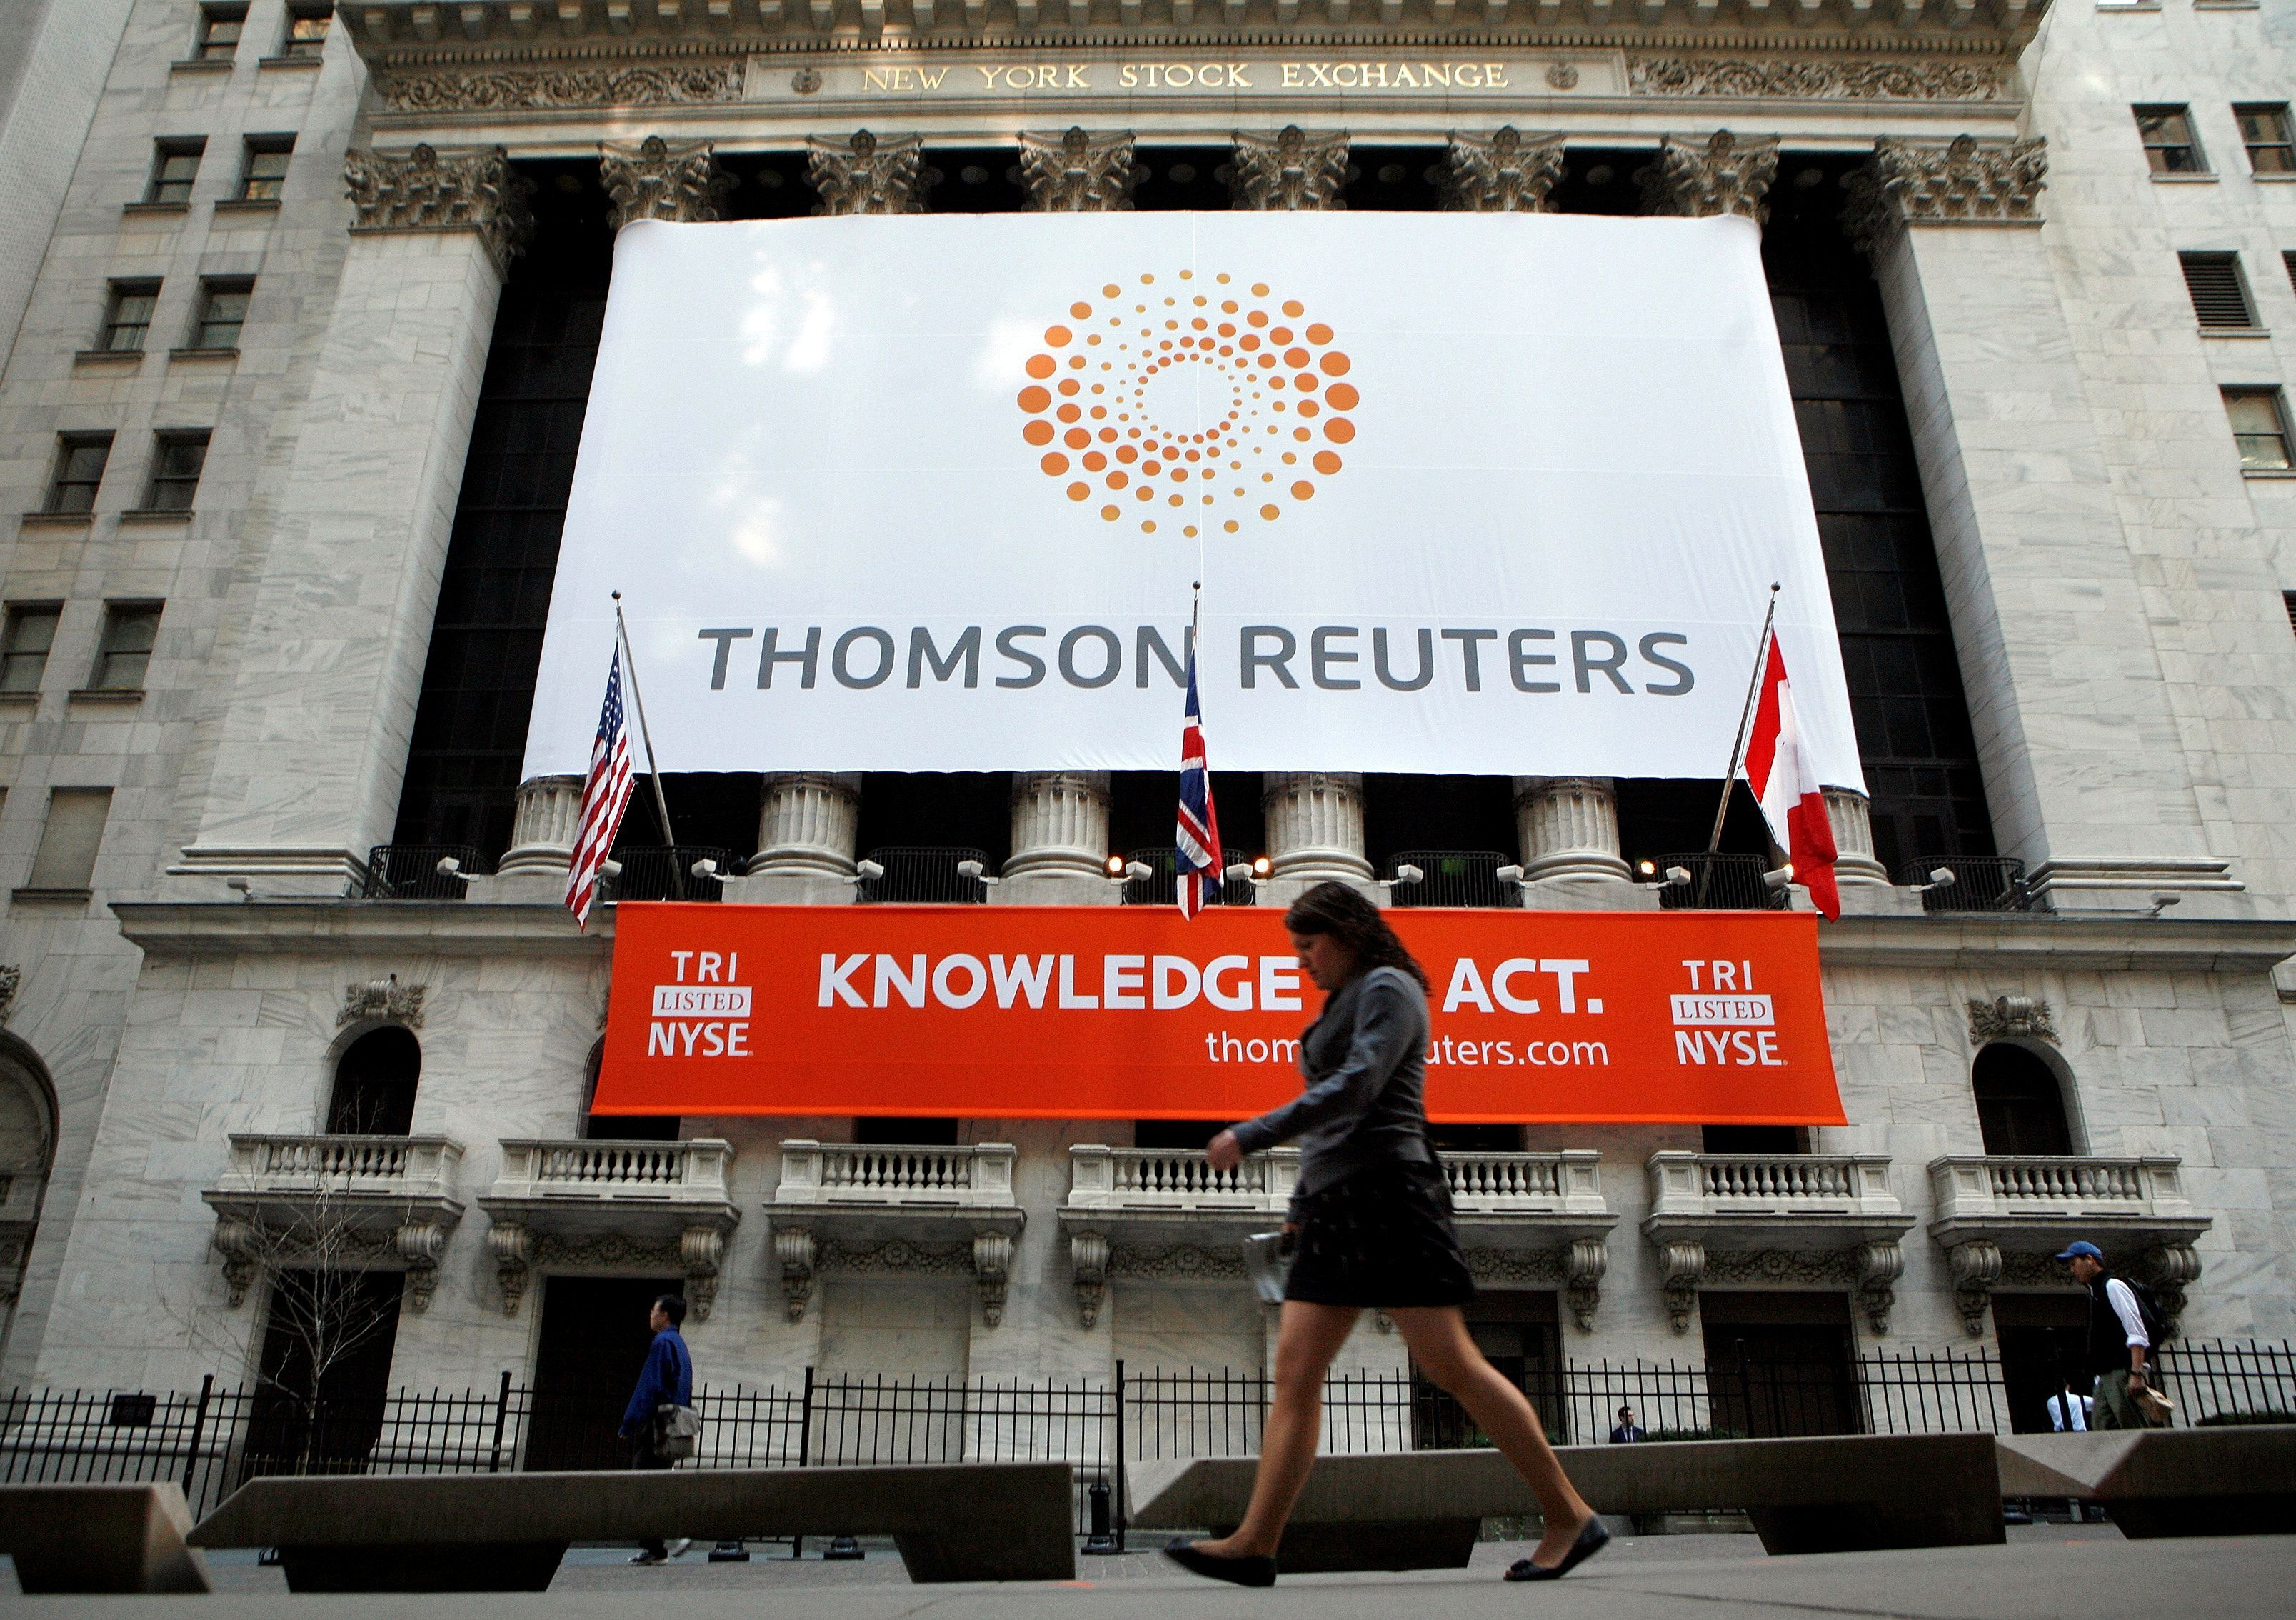 The front of The New York Stock Exchange displays the new Thomson Reuters logo as the stock is traded for the first time in New York April 17, 2008.     REUTERS/Brendan McDermid//File Photo